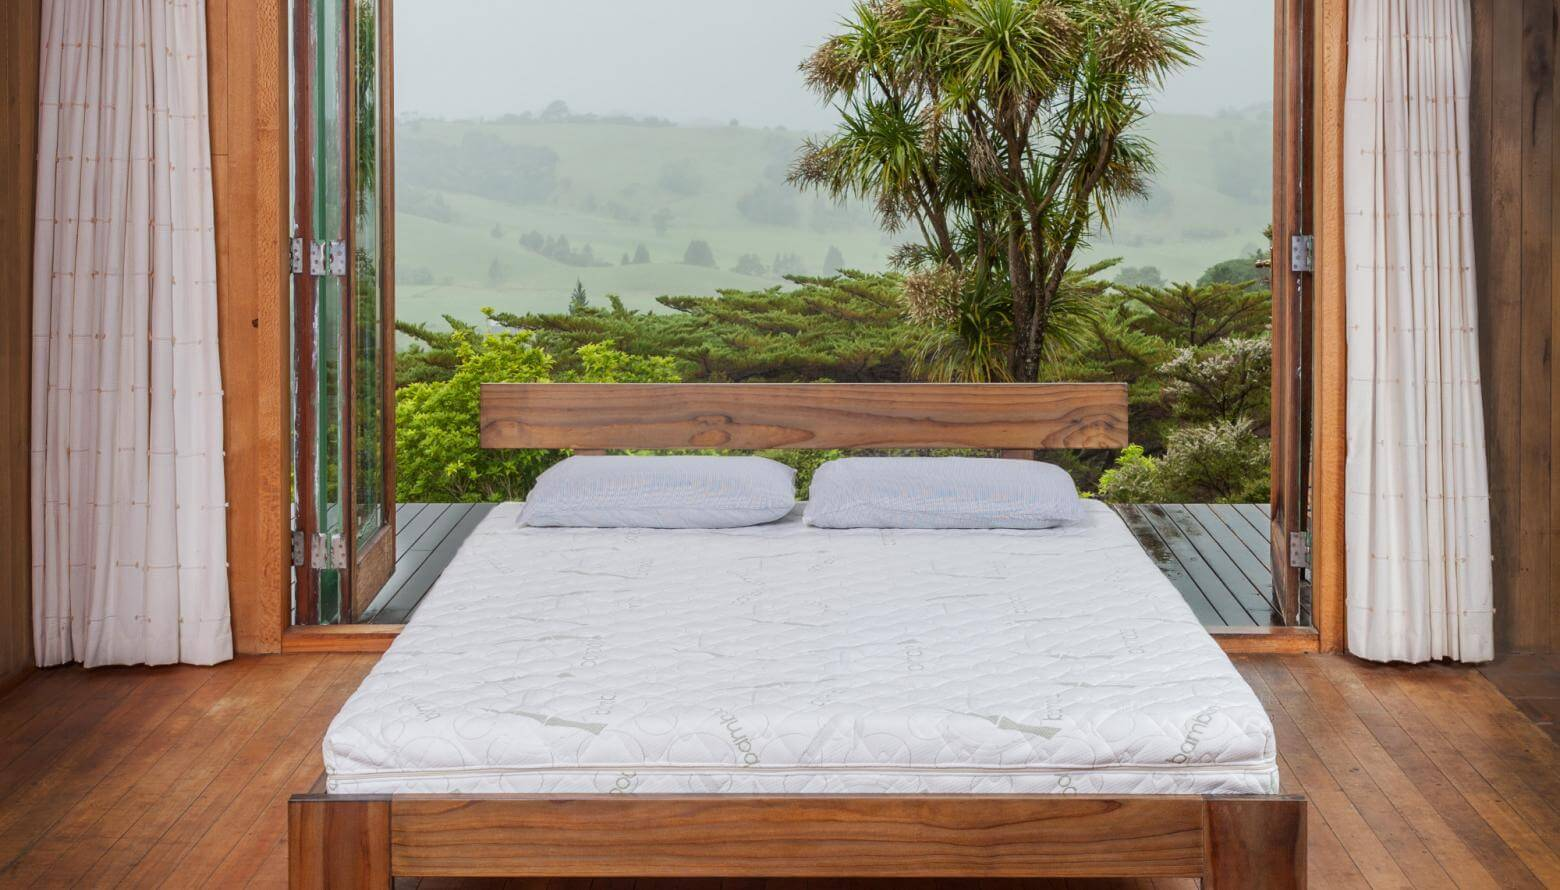 Picture of: Natural Beds Pure New Zealand Beds And Bedding